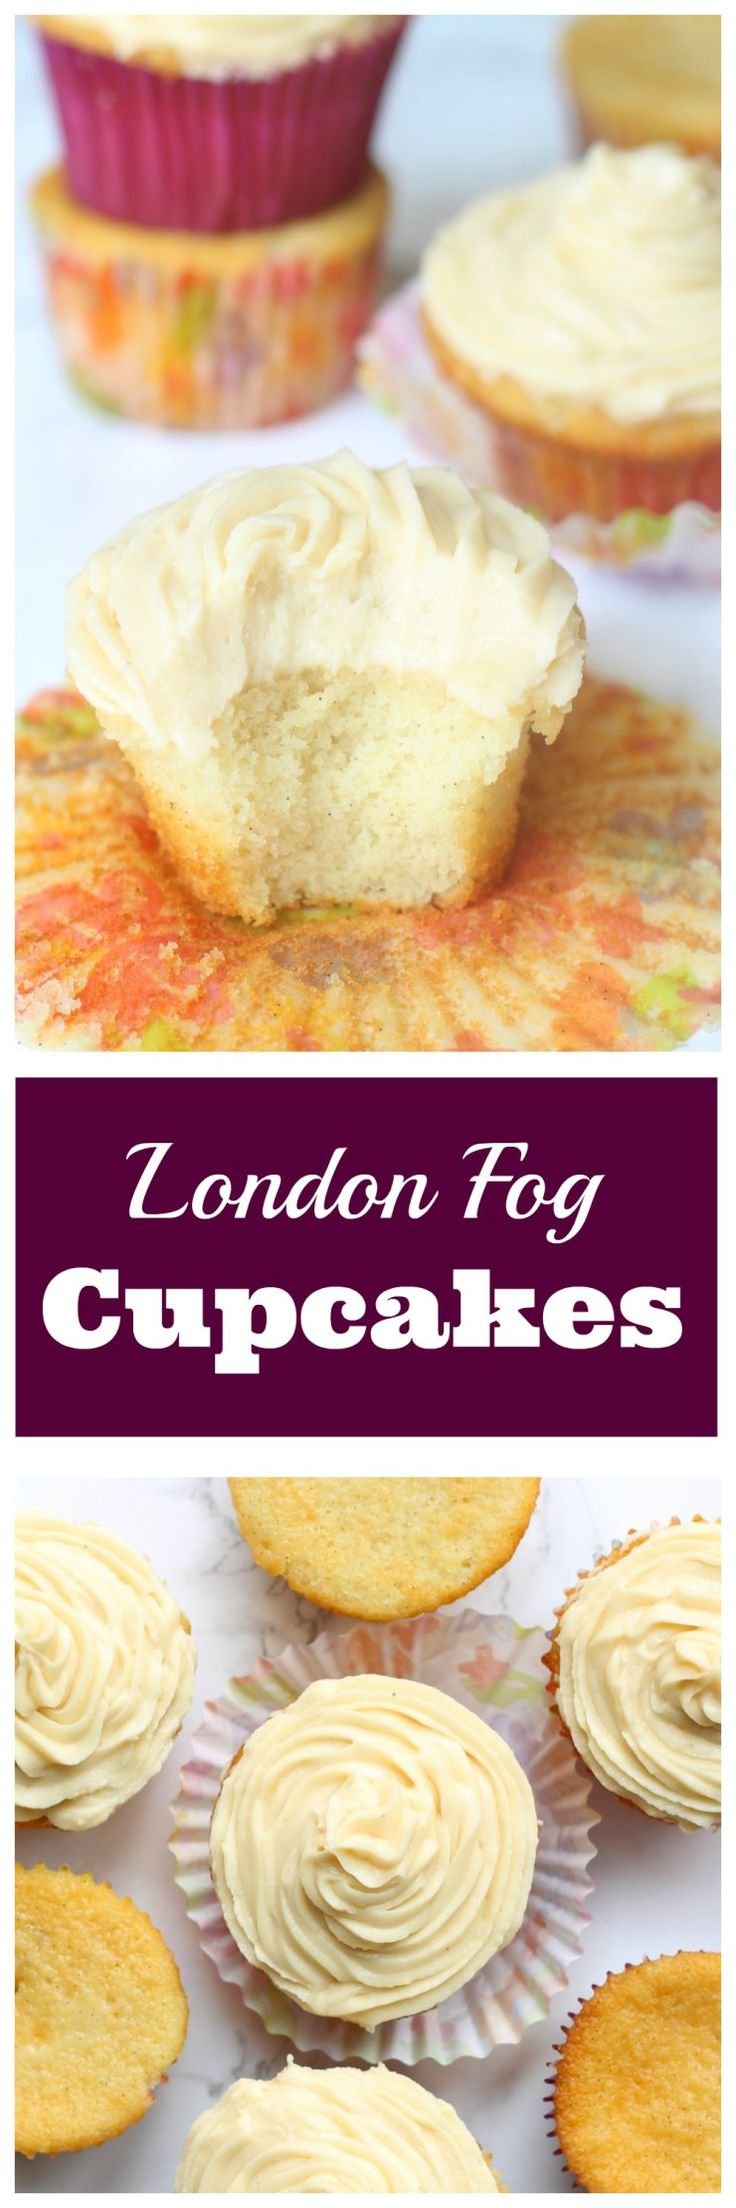 London Fog Cupcakes - Vanilla Bean Cake with Earl Grey Buttercream Frosting